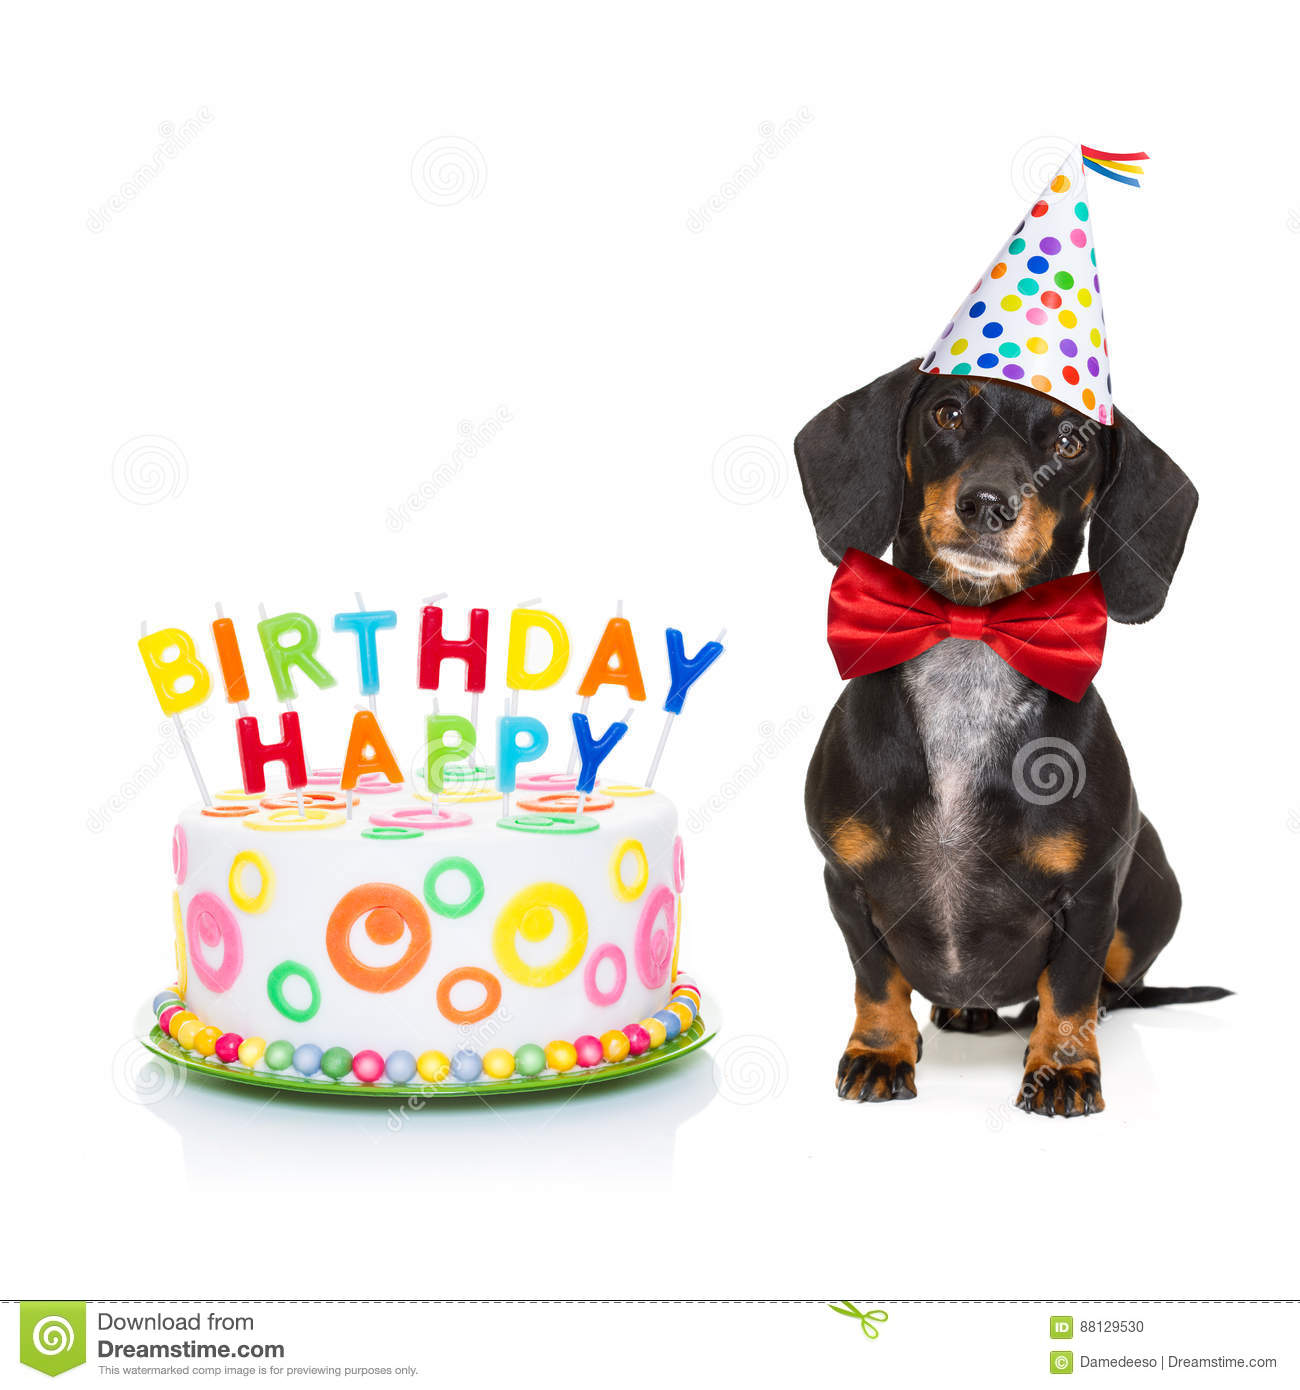 Dachshund Or Sausage Dog Hungry For A Happy Birthday Cake With Candles Wearing Red Tie And Party Hat Isolated On White Background